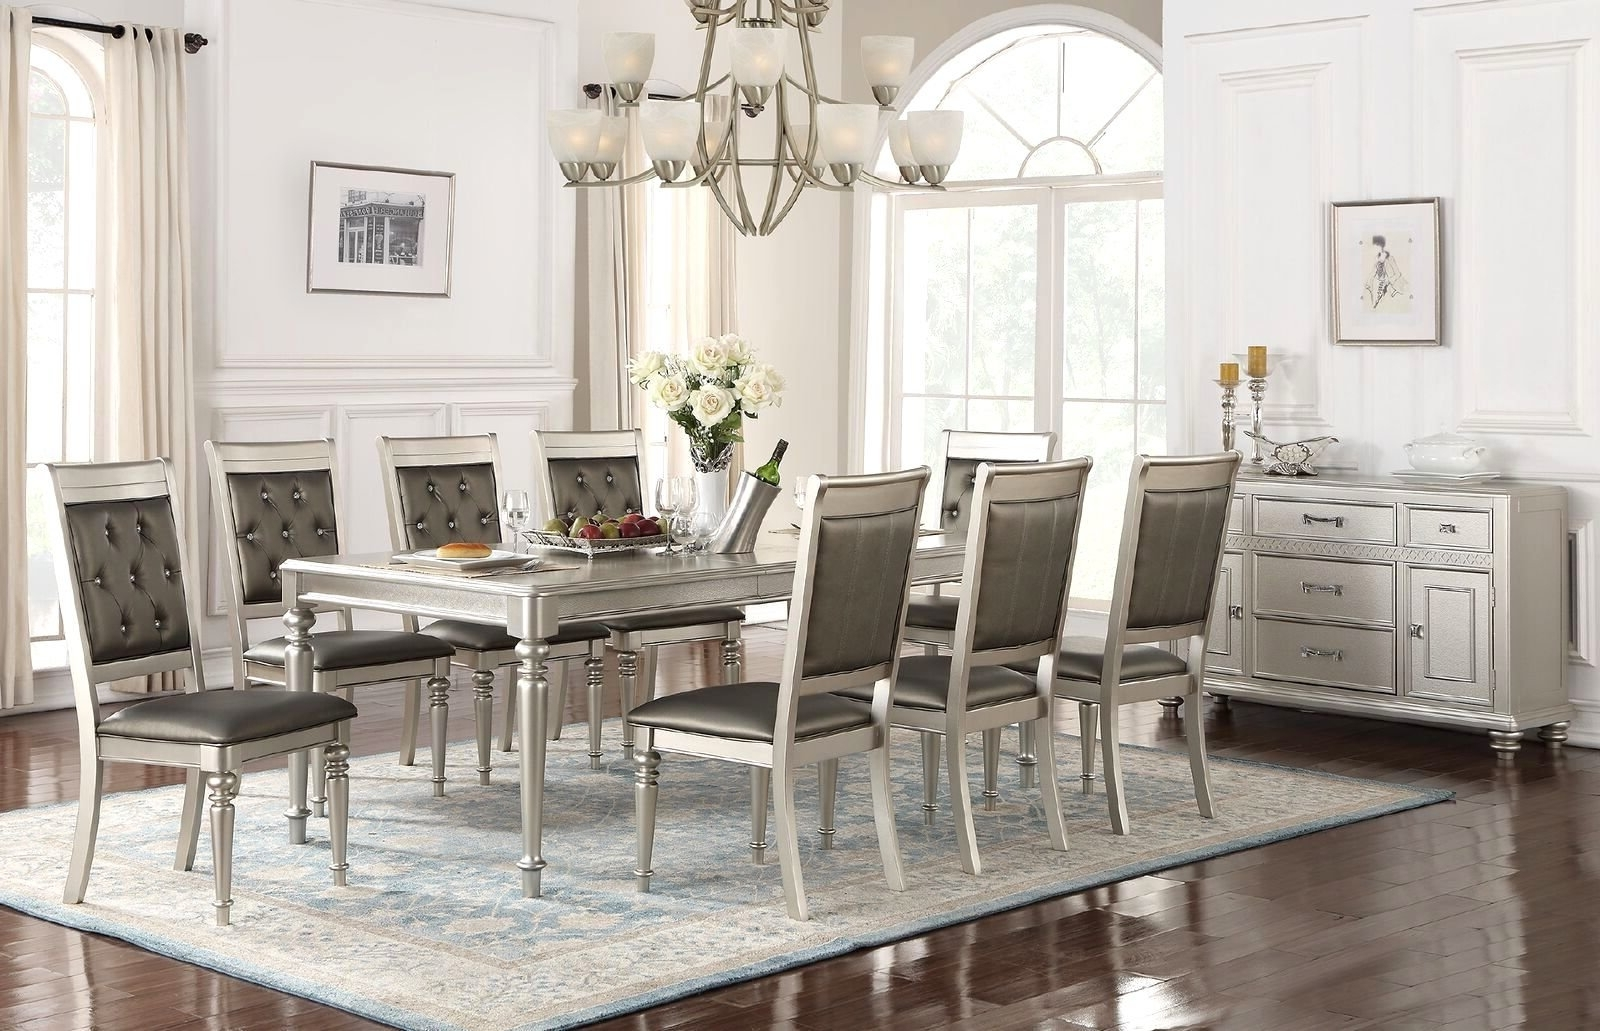 Wayfair Intended For Caira Black 5 Piece Round Dining Sets With Diamond Back Side Chairs (View 19 of 25)